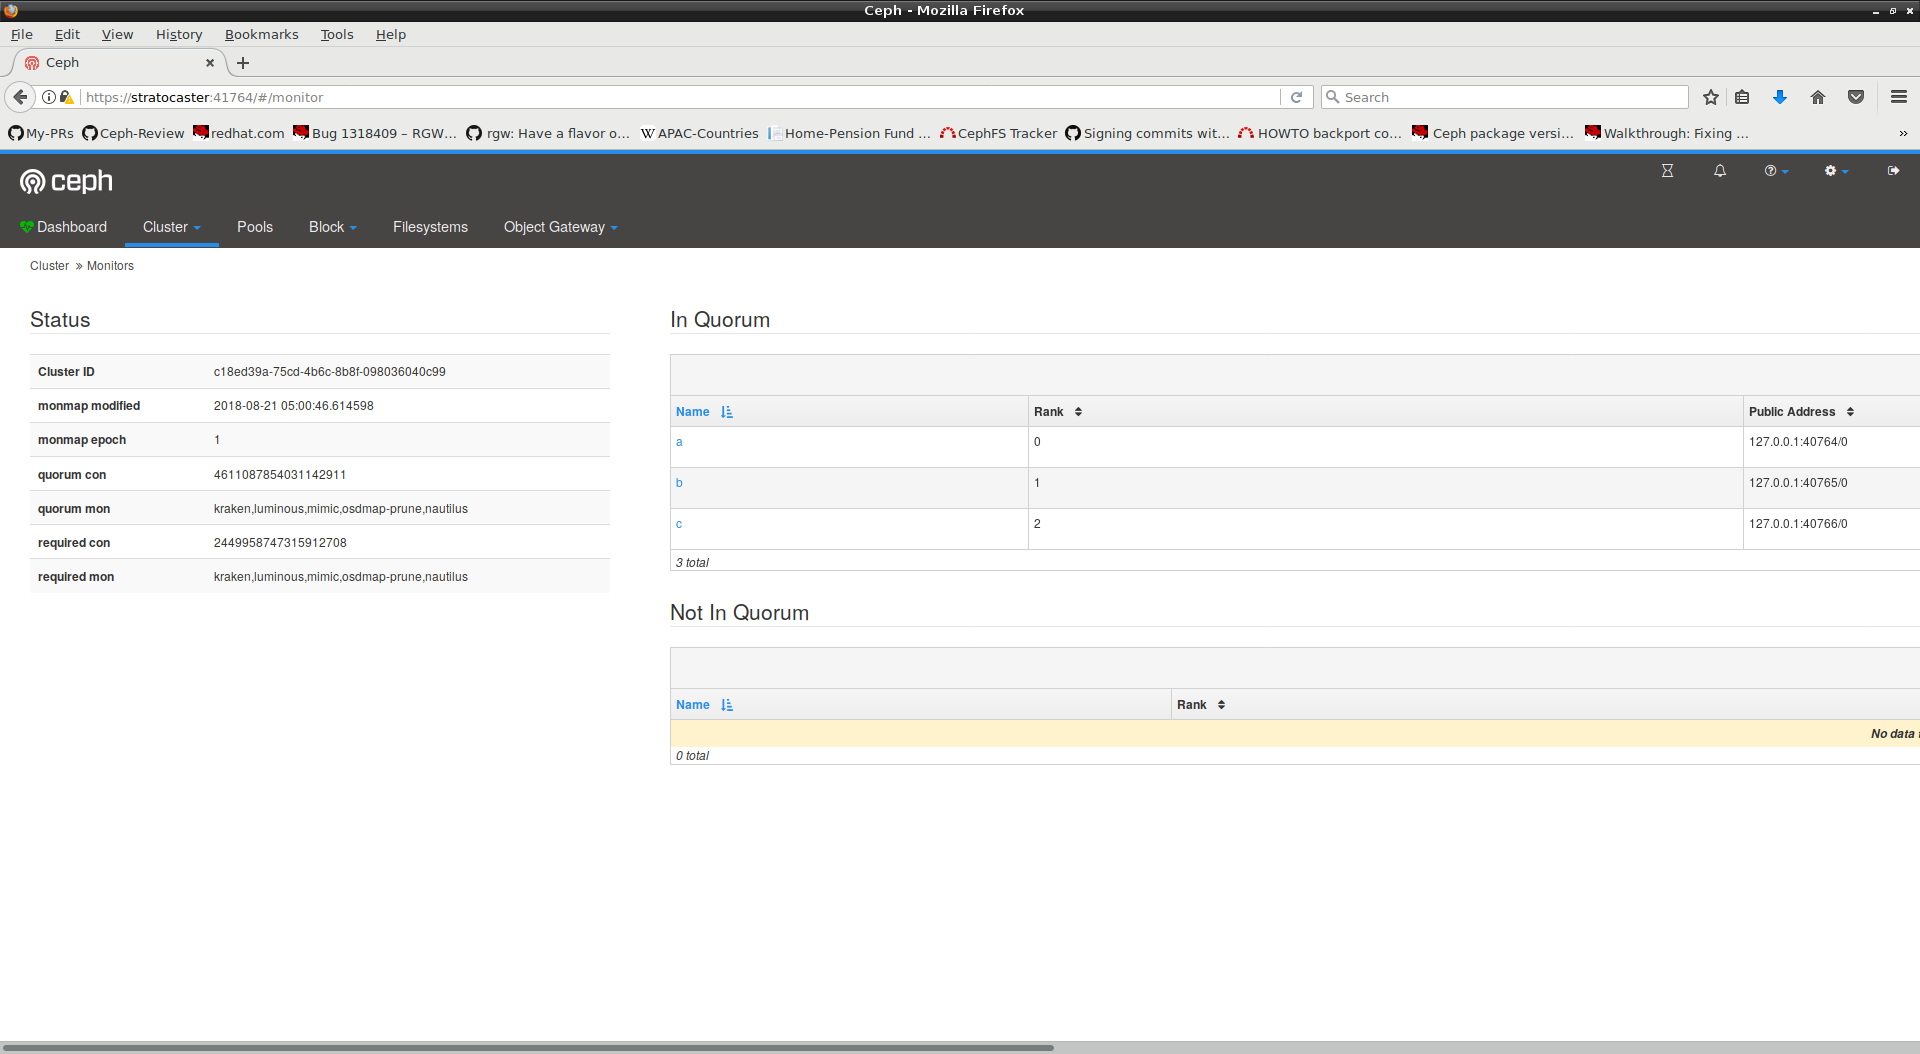 Bug #26999: mgr/dashboard: In Quorum table size changing in Firefox